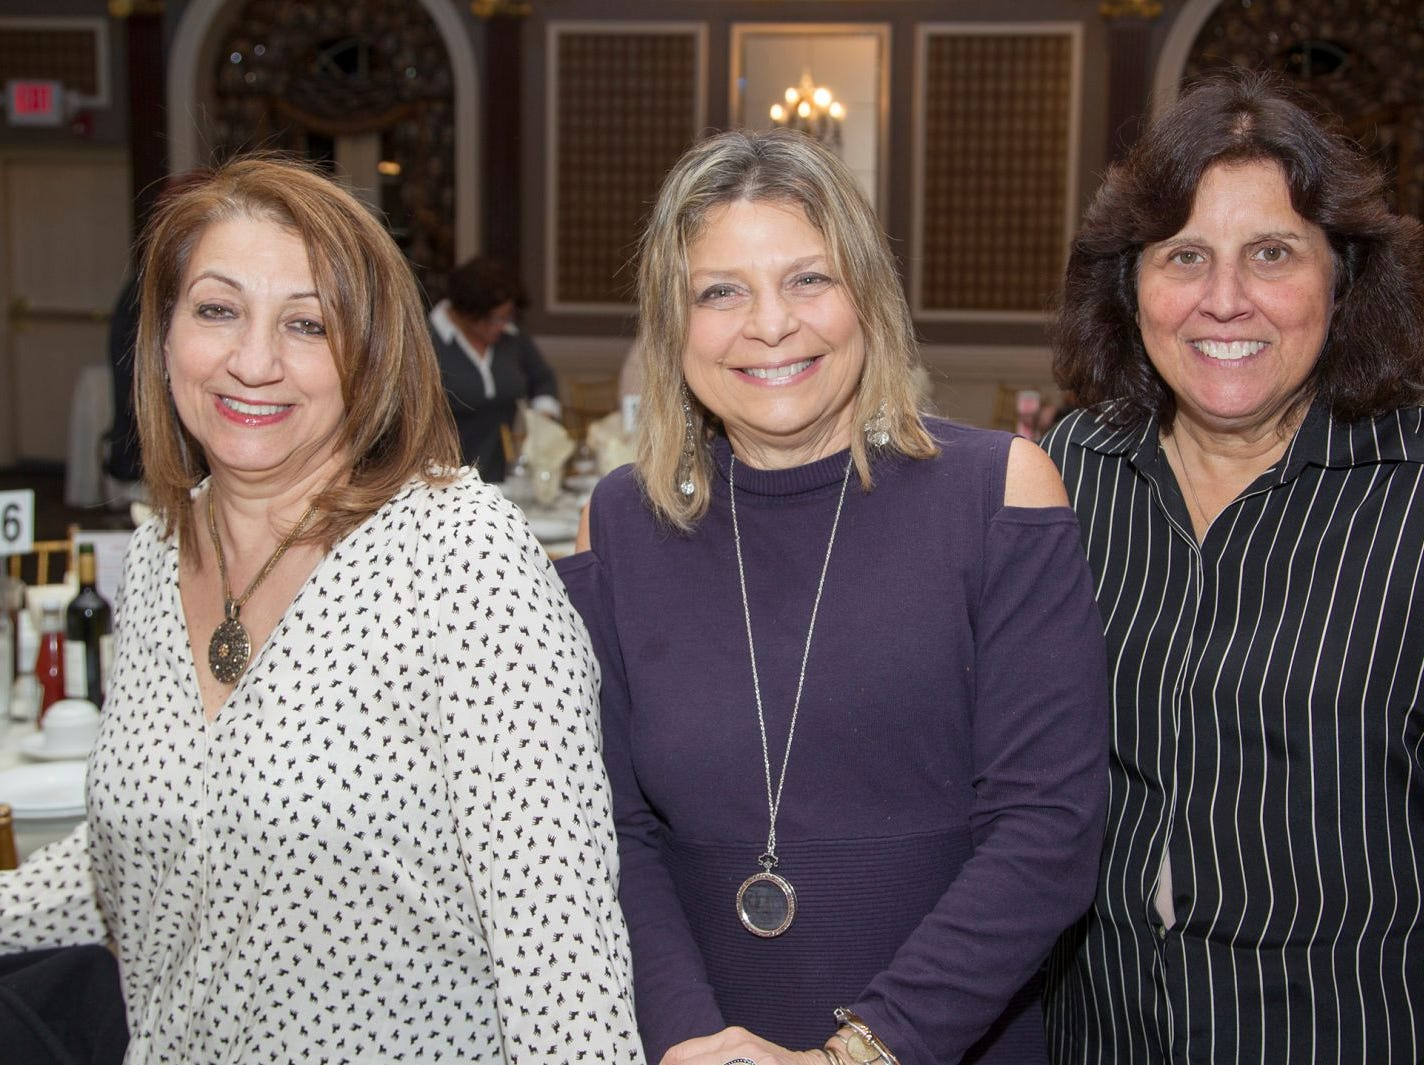 Karan Arakelien, Diane Markley, Barbara Schiffman. A Night at the Races hosted by OASIS at the Brownstone in Paterson. 2/7/2019